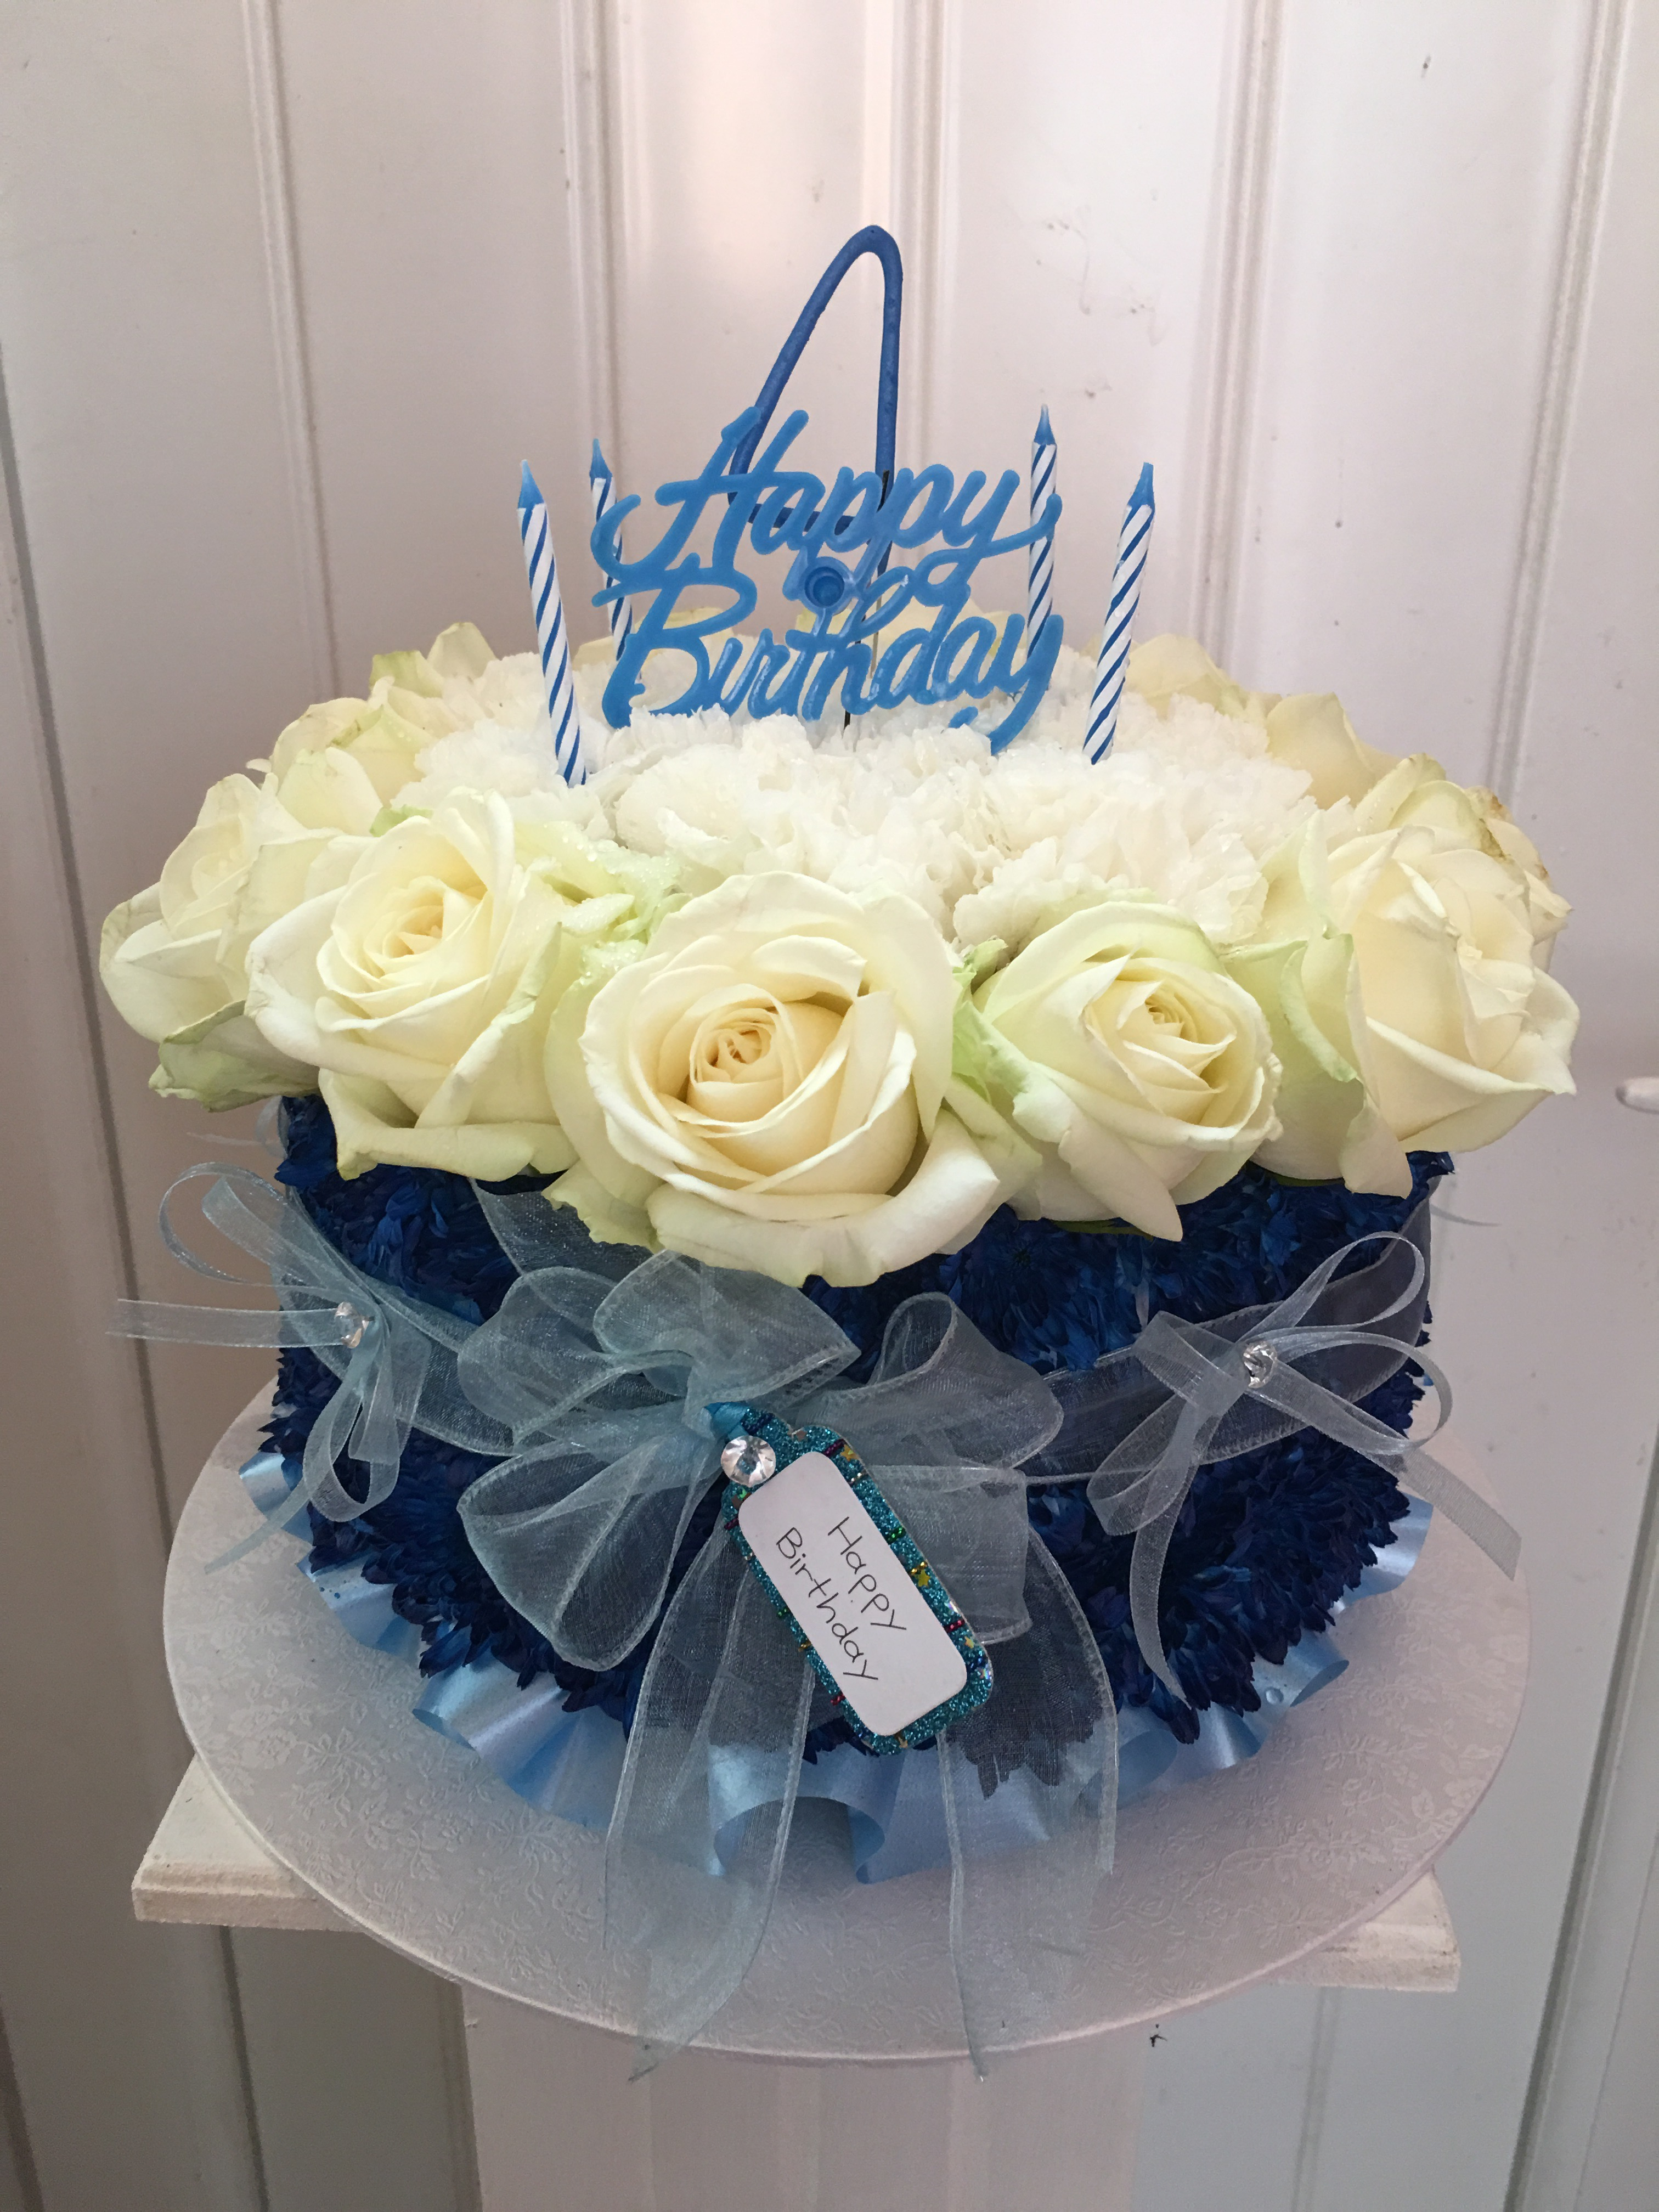 Floral birthday cakes the flower fairie a small floral birthday cake for a little boys grave its so difficult to think of a suitable tribute at these times and this was just perfect dhlflorist Images